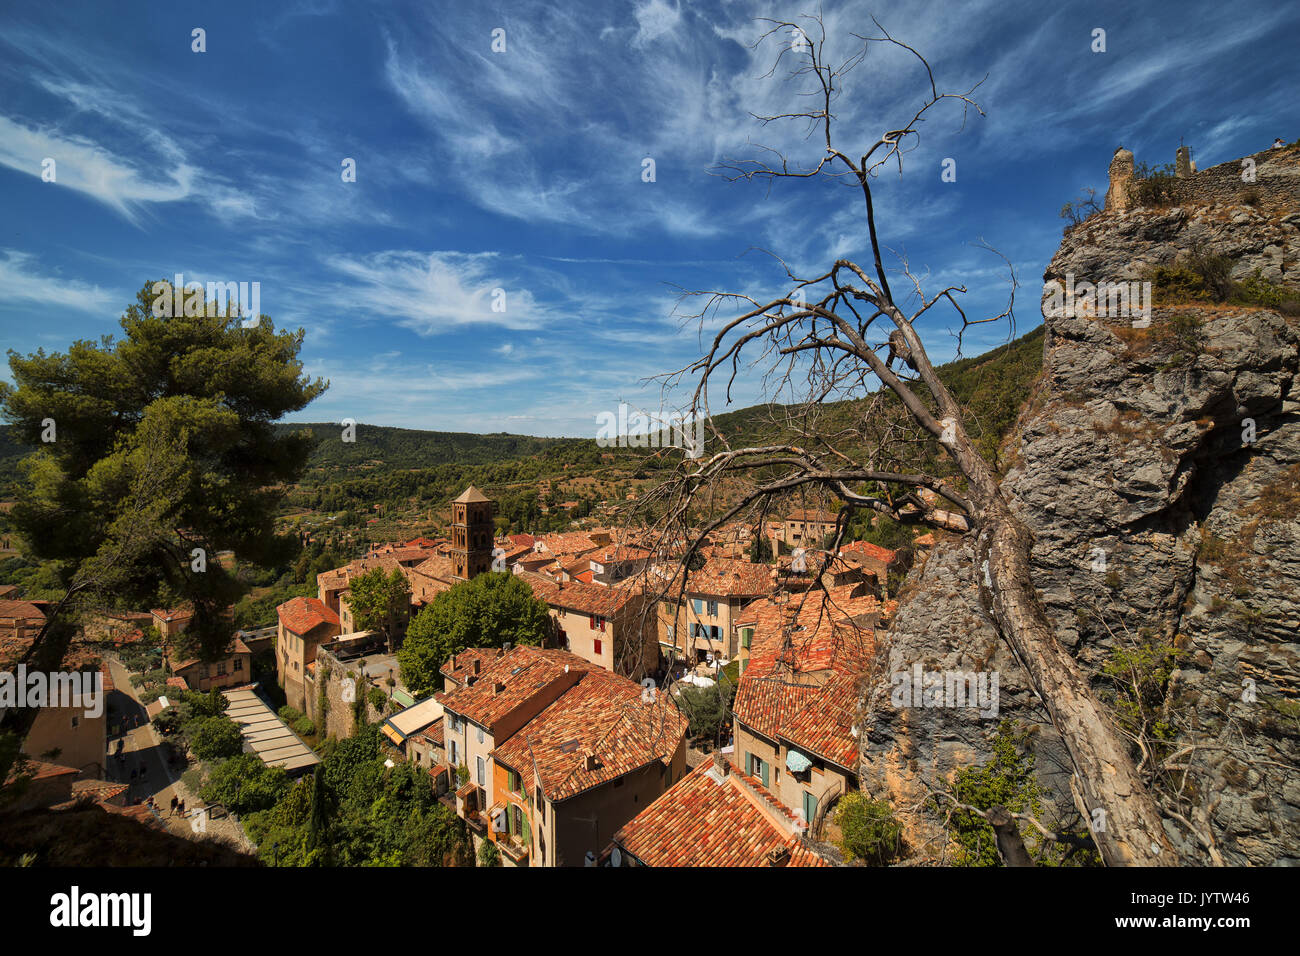 Moustier sainte-Marie In france, Lovely town Stock Photo